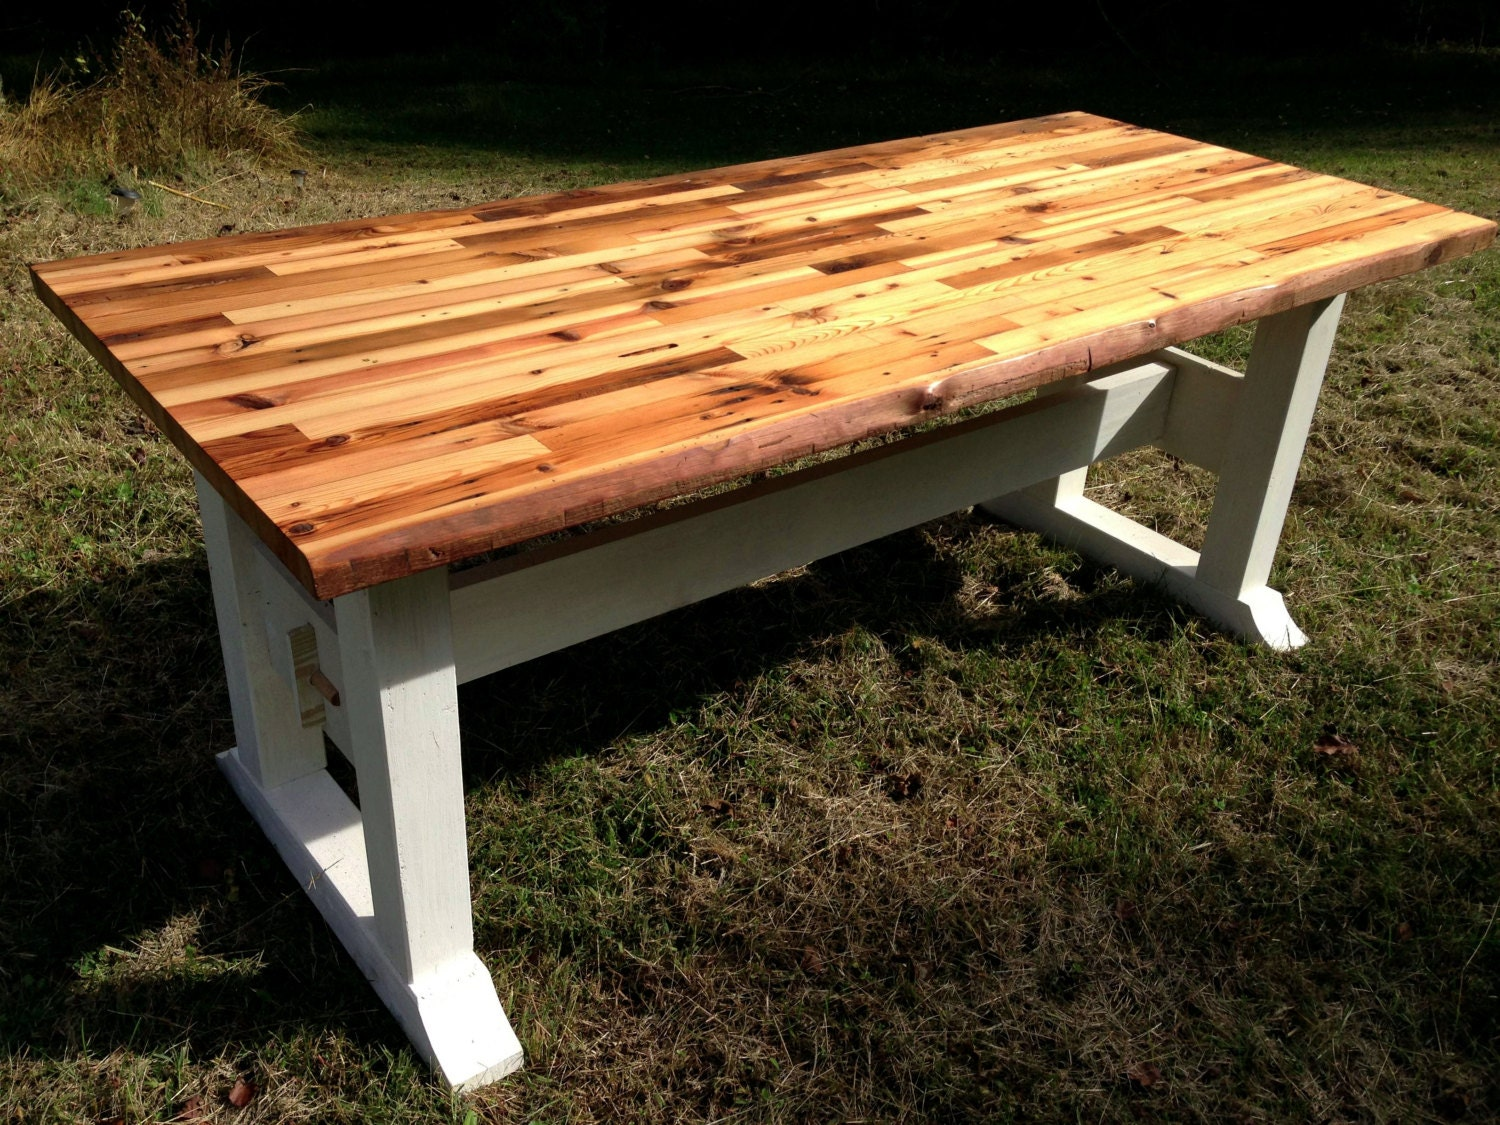 Butcher block table top and trestle frame : ilfullxfull5141608152xel from www.etsy.com size 1500 x 1125 jpeg 527kB